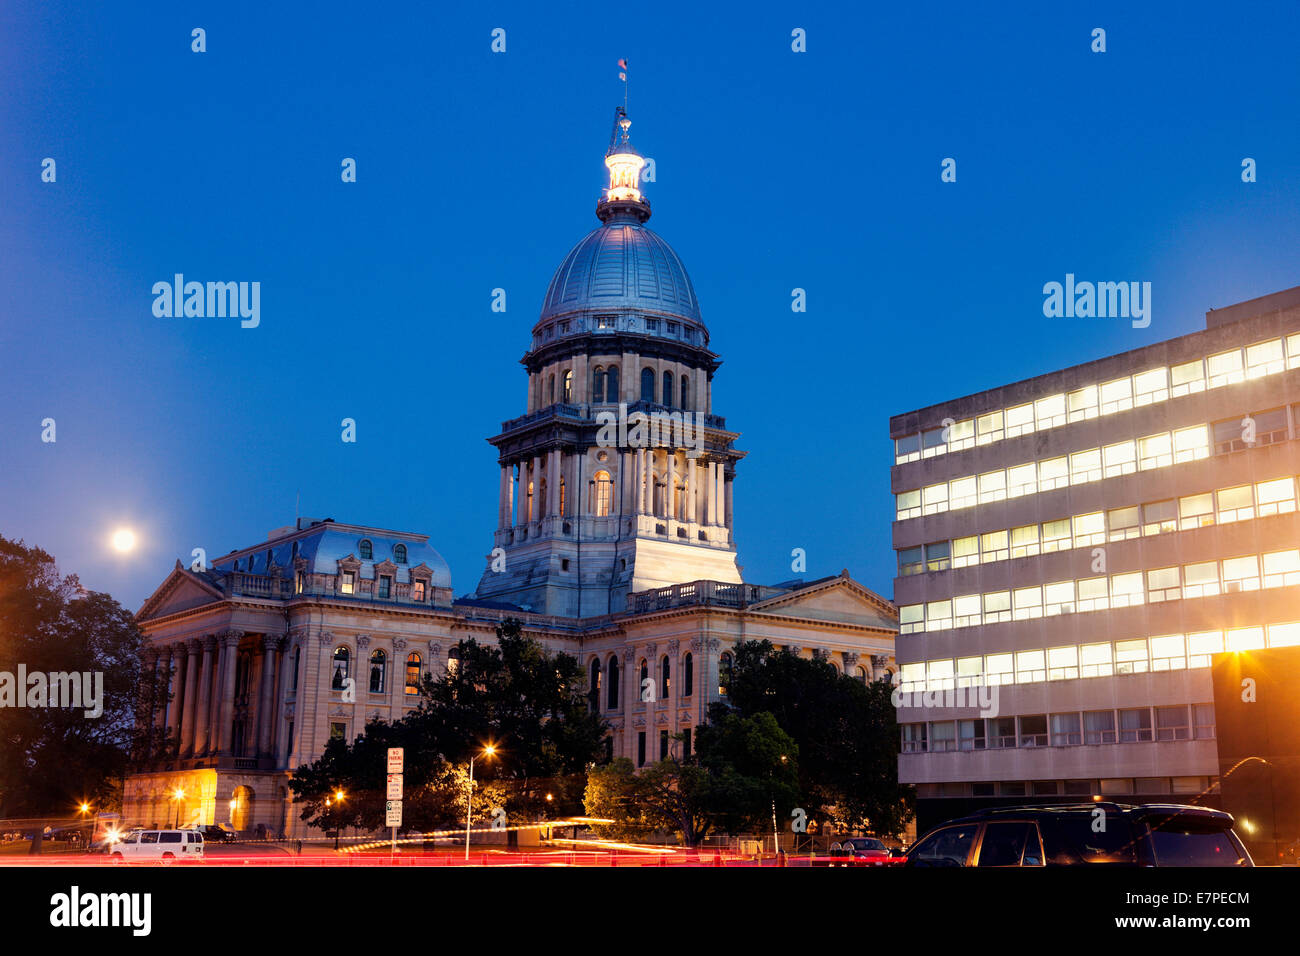 USA, Illinois, Springfield, State Capitol Building - Stock Image